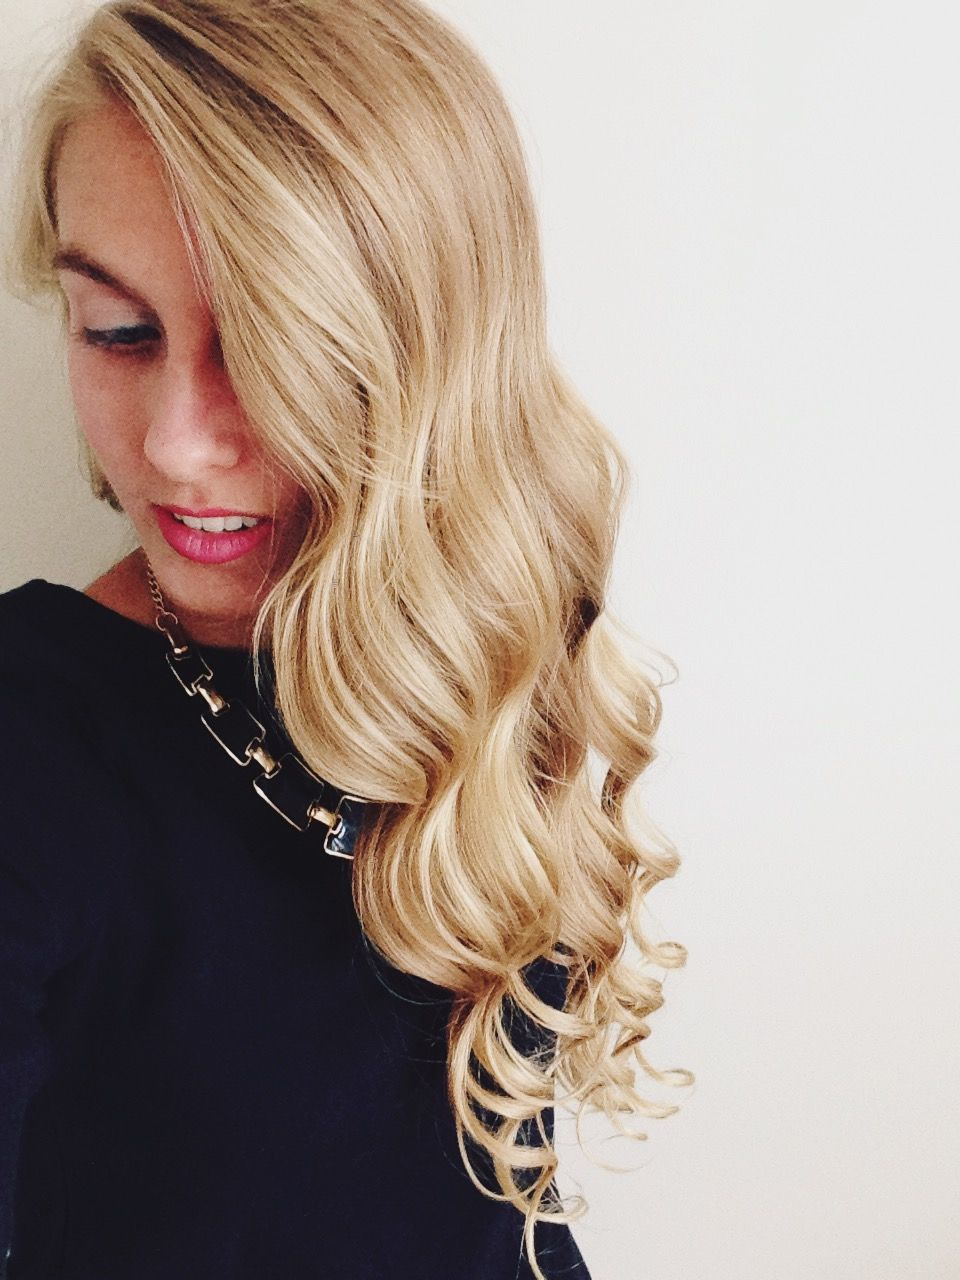 """Use a 1"""" curling wand to wrap hair around in small sections. When finished, flip head upside down to shake out and voila! Wrap the hair all in the same direction for an old Hollywood look or in different directions for a more natural look."""